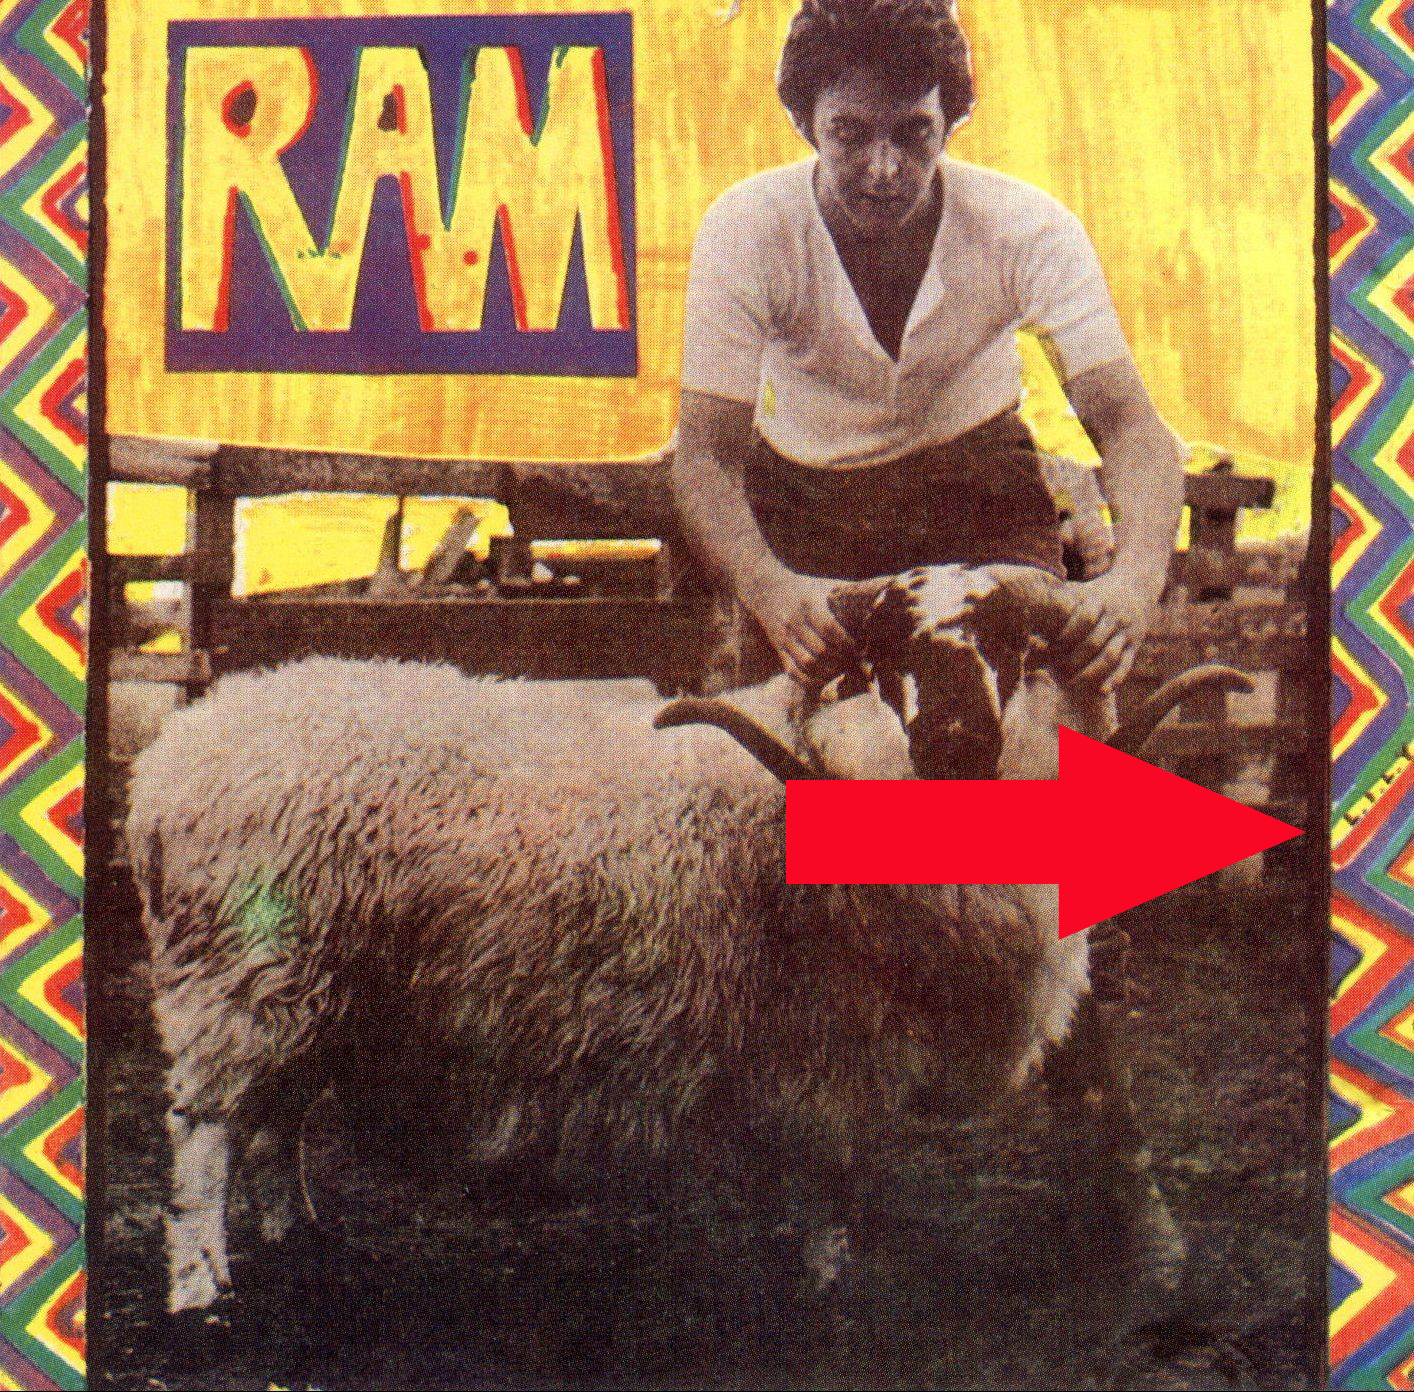 Paul & Linda McCartney Ram Album Cover Hidden Message L.I.L.Y.